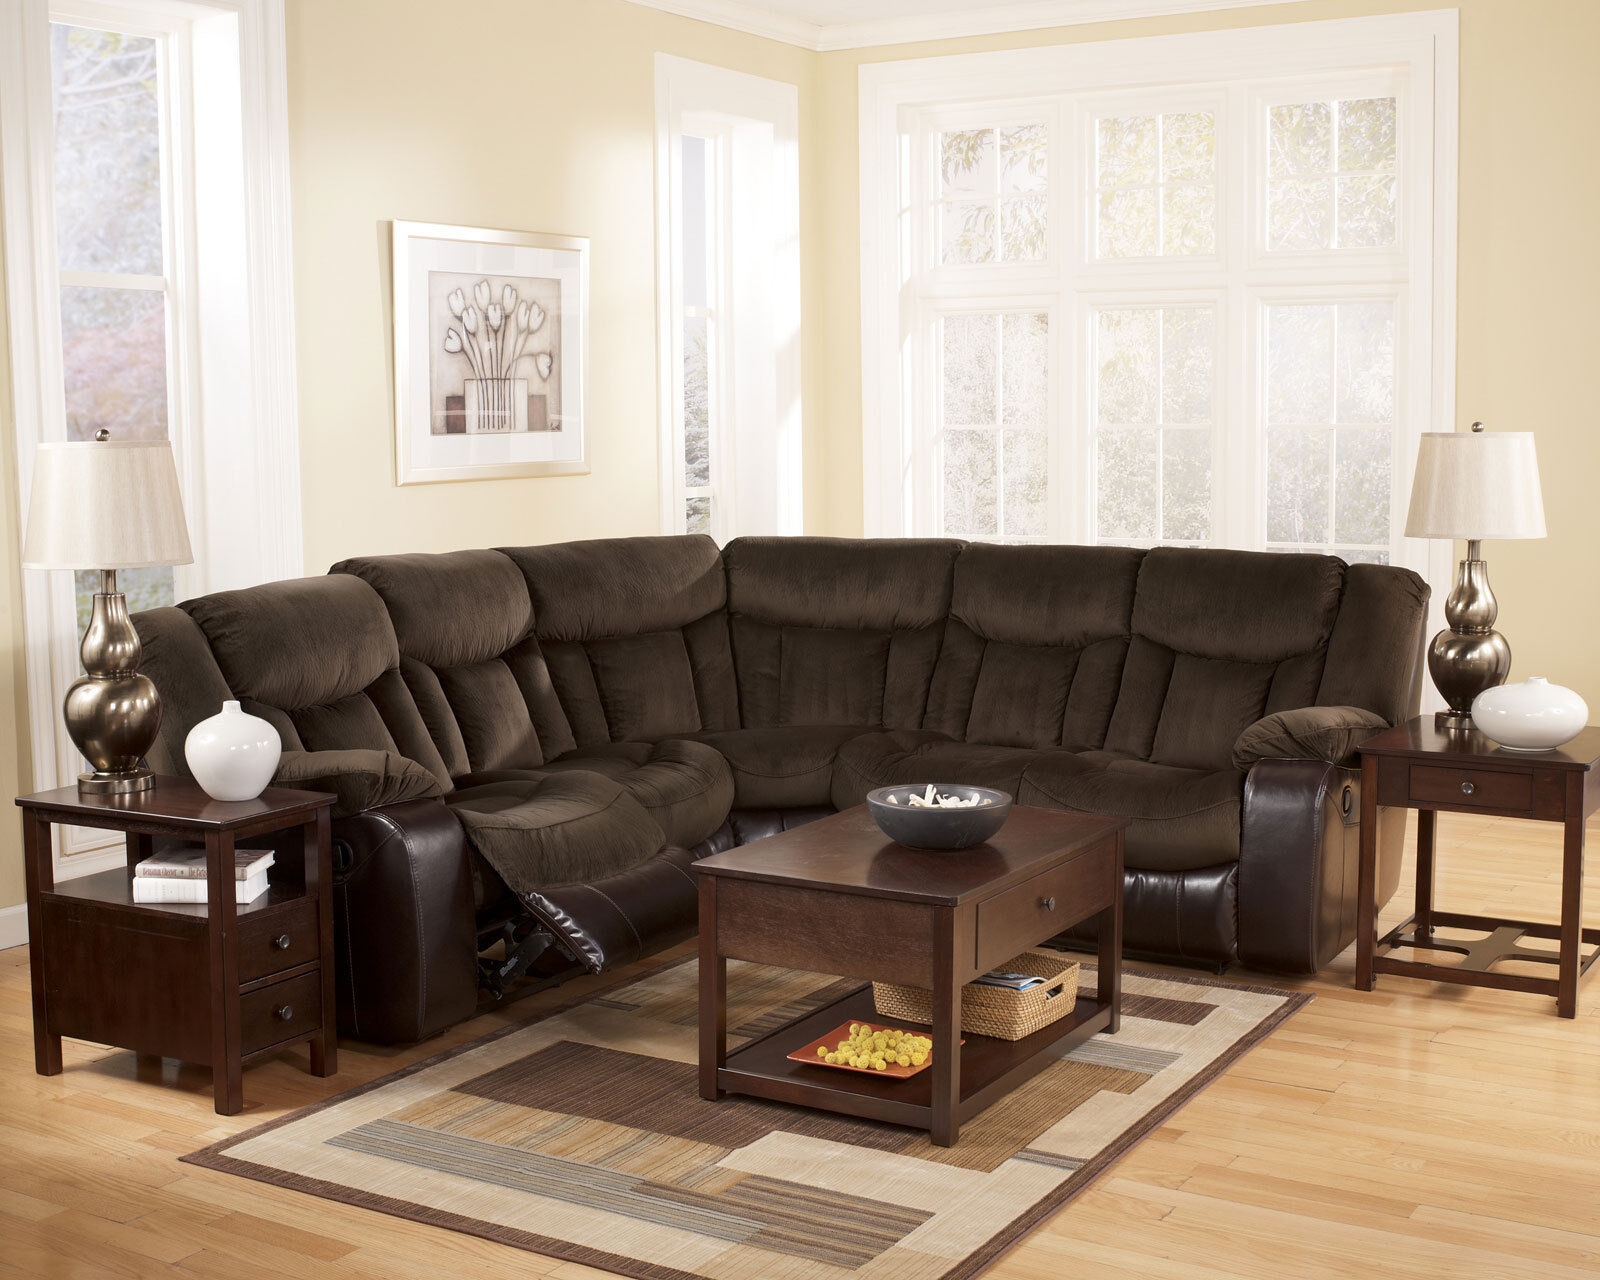 faux leather reclining sofa set sand bag gray microfiber recliner couch living room